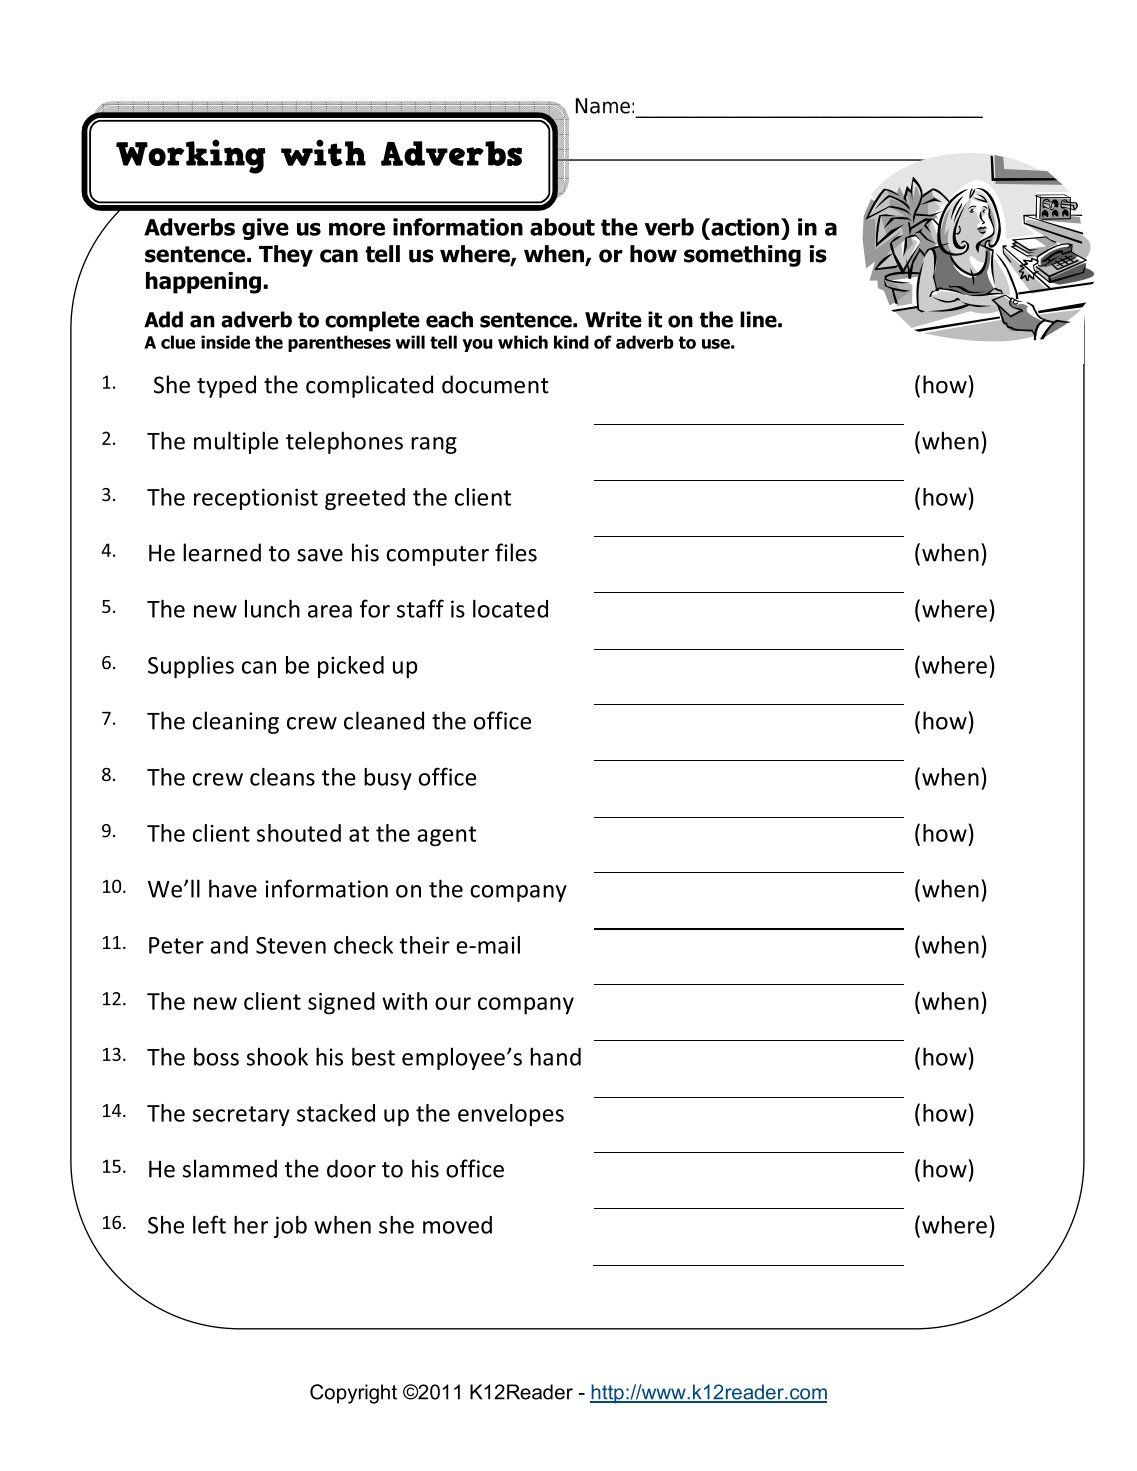 Worksheets Adverb Worksheets 5th Grade worksheets adverb 5th grade citysalvageanddesign free adverbs printable 100 for grade